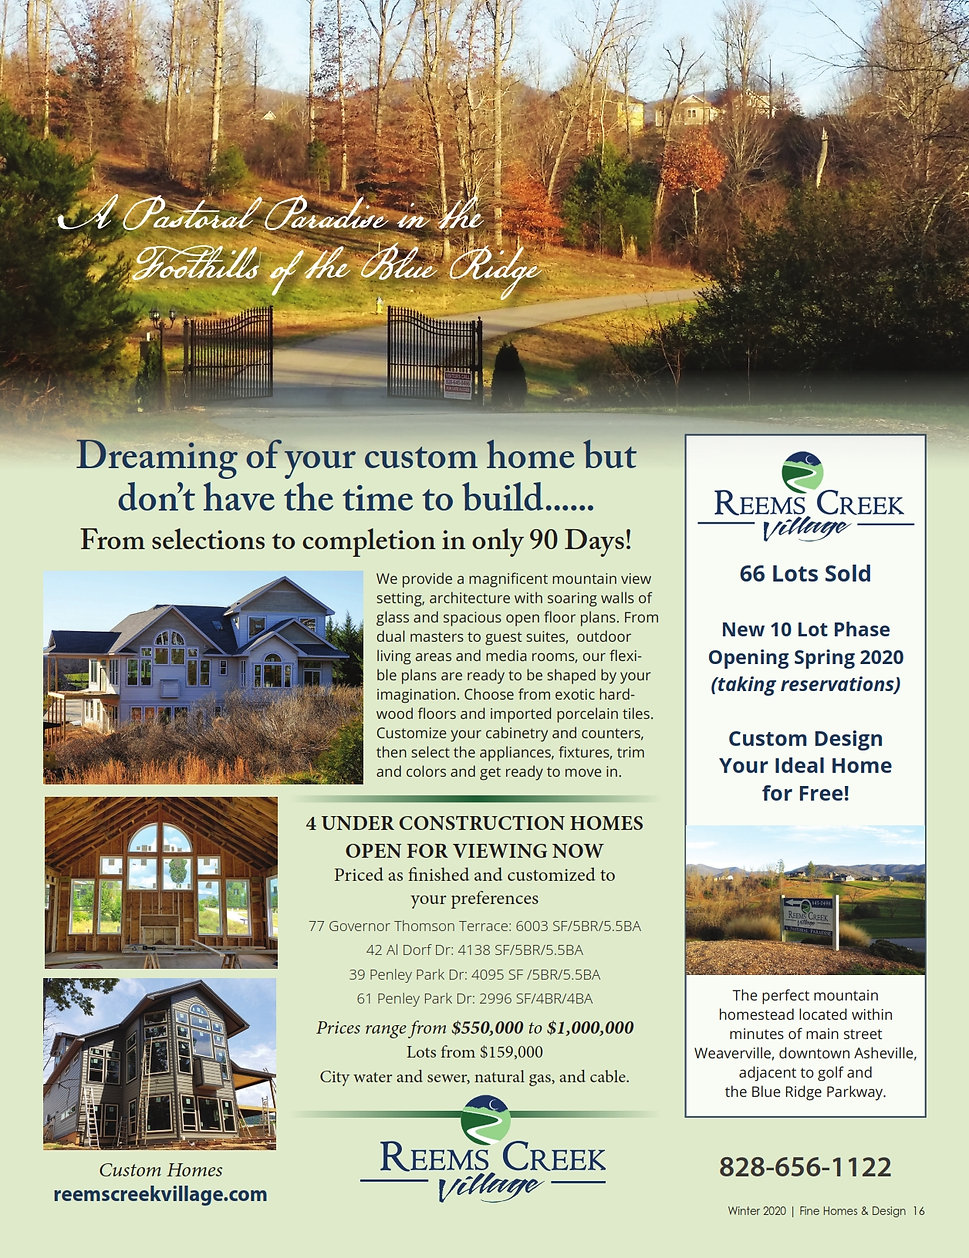 Reems Creek Village AD 1-2020_001.jpg